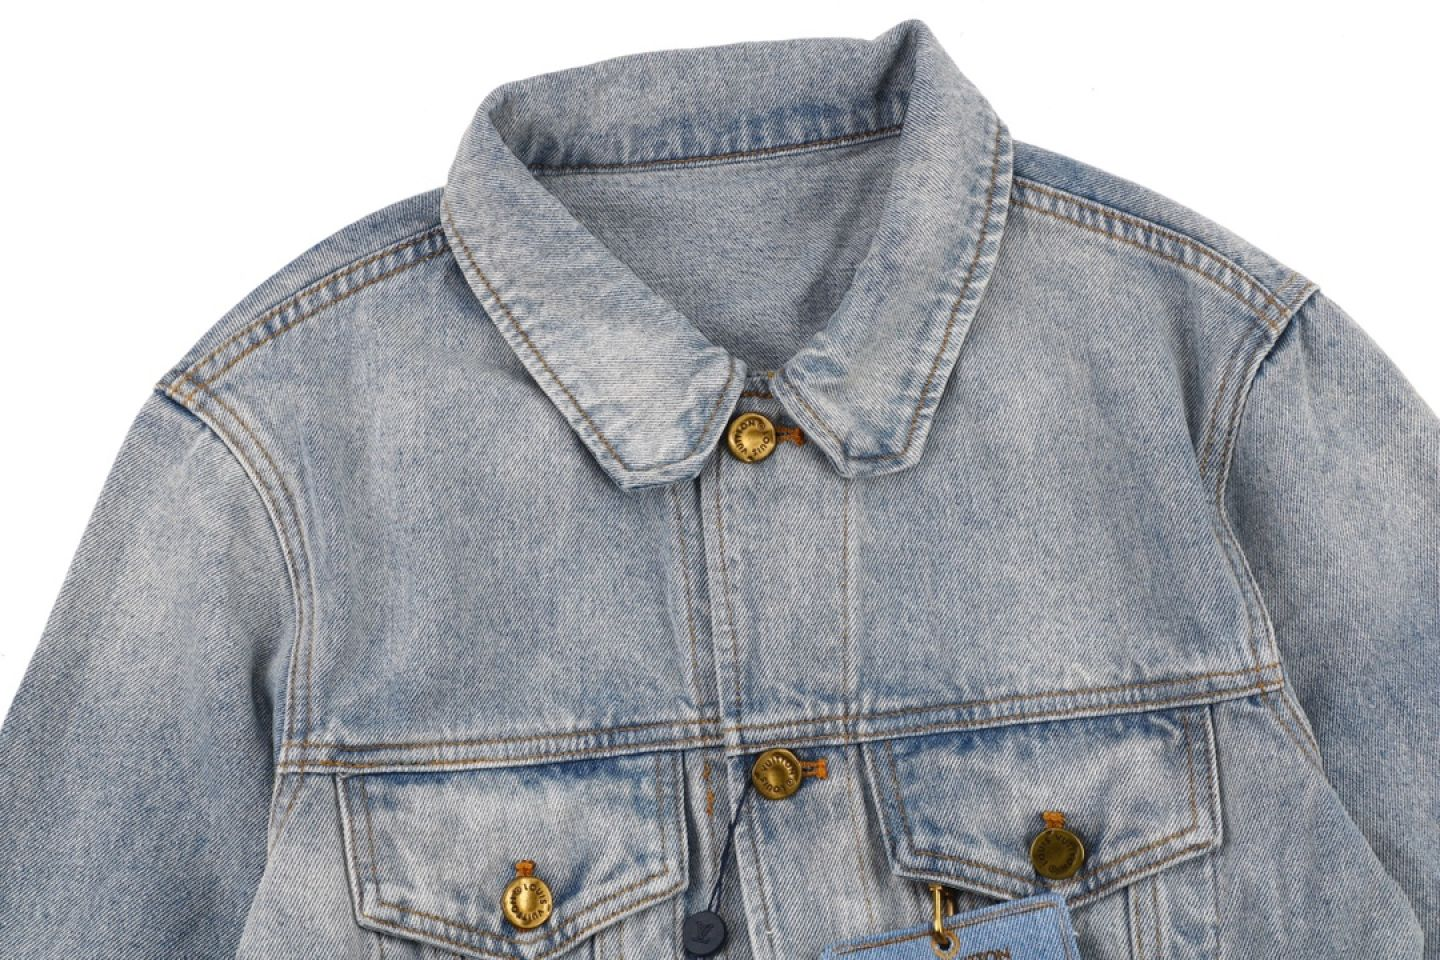 Jacket Louis Vuitton 20fw wash list vintage denim jacket 2 louis_vuitton_20fw_wash_list_vintage_denim_jacket_2